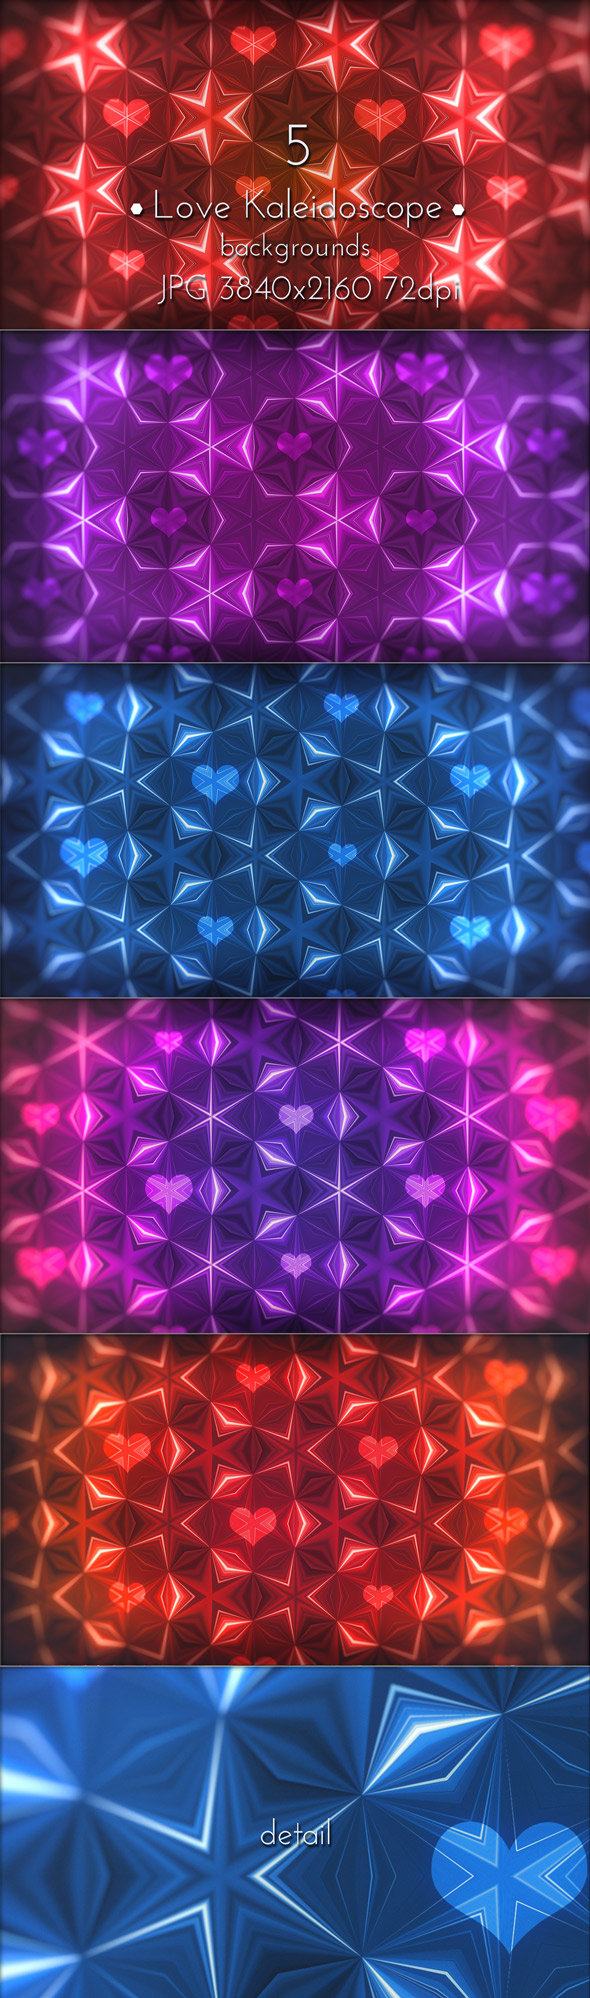 Love Kaleidoscope Patterns UltraHD backgrounds. #love #kaleidoscope #patterns #valentines #backdrops